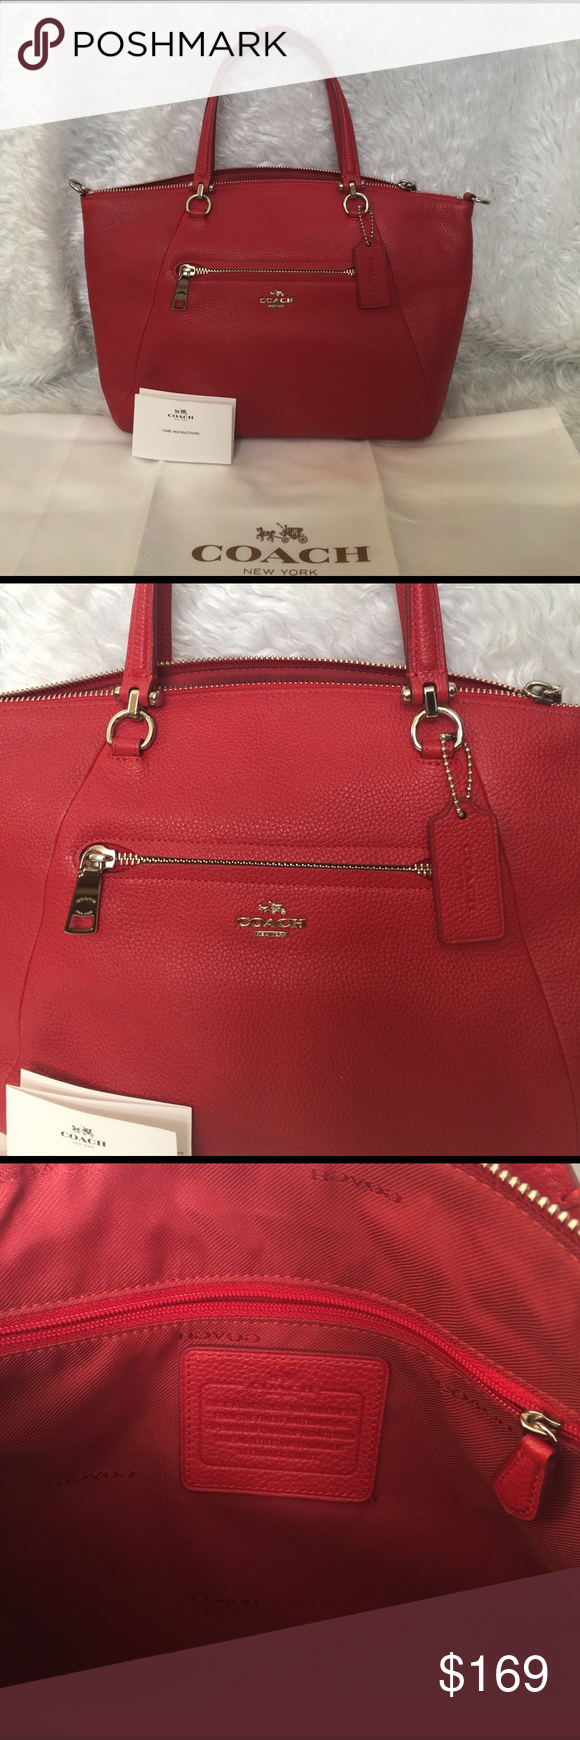 💯Coach Prairie Satchel Red w/silver hardware NWOT 💯Coach Prairie Satchel Red w/silver hardware NWOT. Bag was never carried was a customer return from a major department store. Completely clean inside and out. Missing shoulder strap. Comes with dust bag and car card. Pet free smoke free. ❌trade. Make reasonable offers please. Coach Bags Satchels